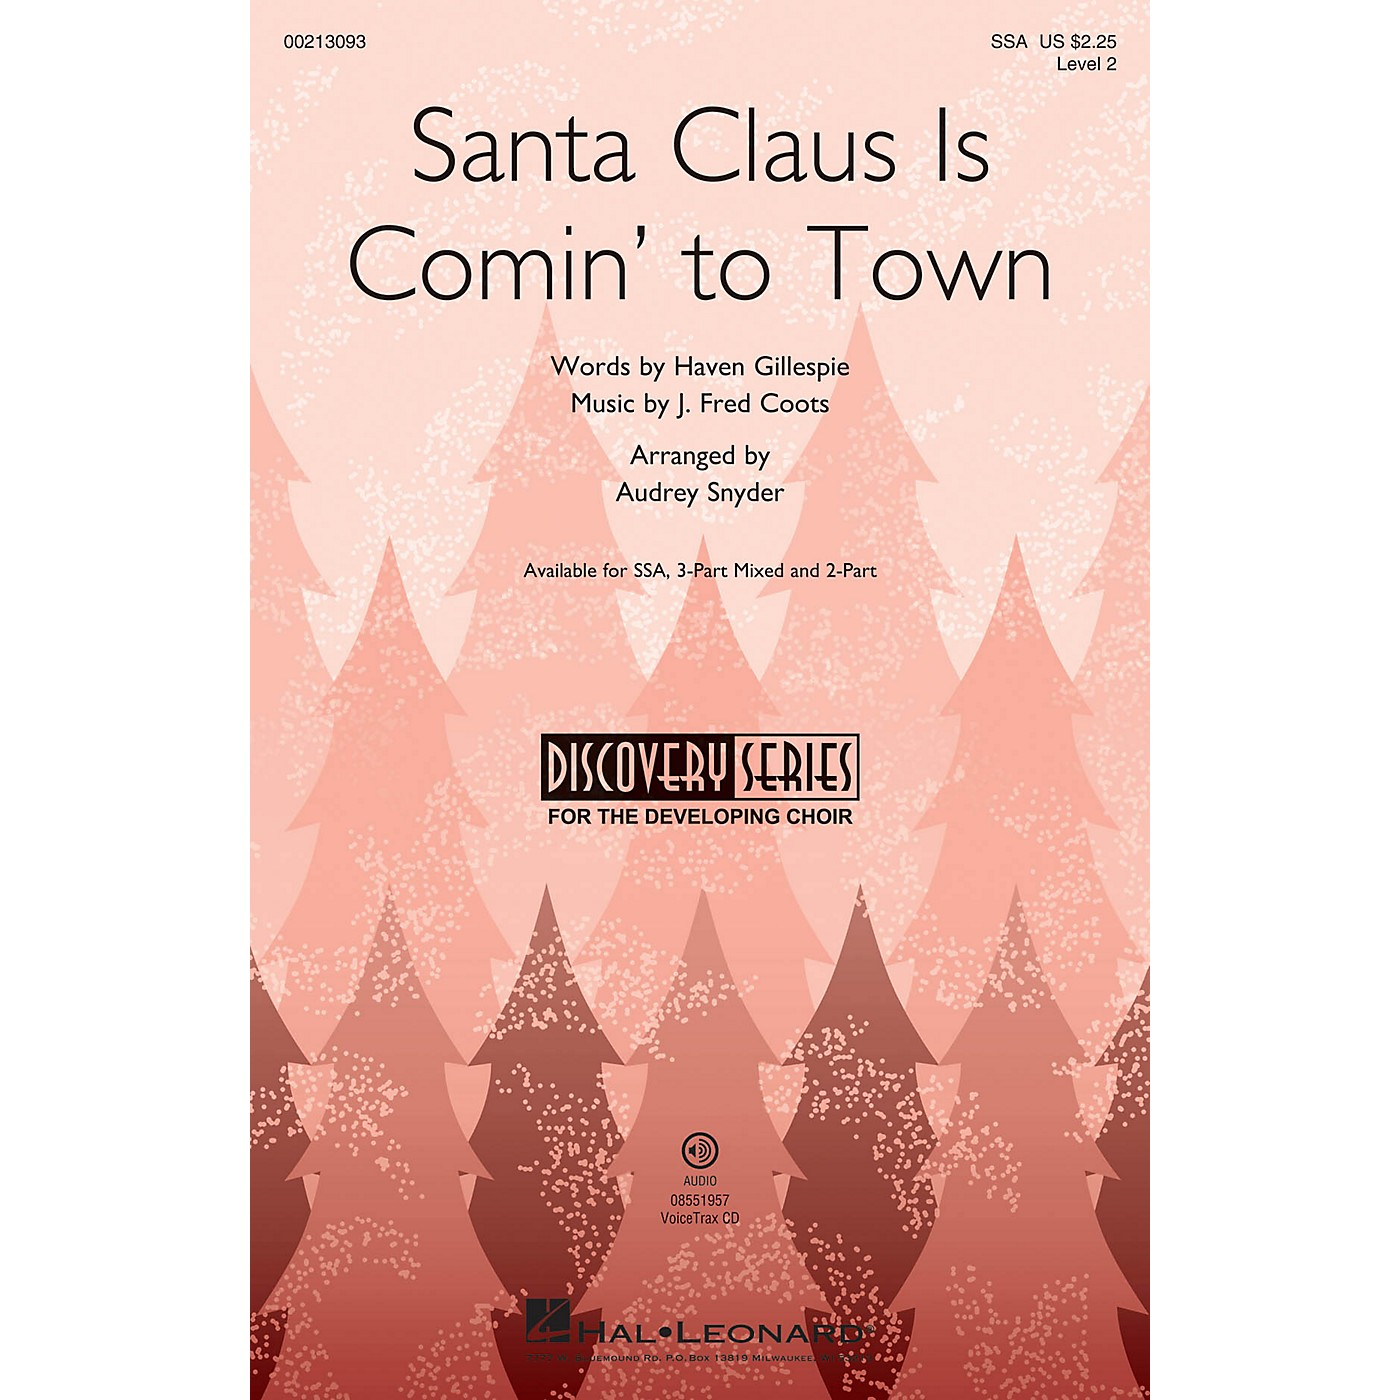 Hal Leonard Santa Claus Is Comin' to Town (Discovery Level 2) SSA arranged by Audrey Snyder thumbnail